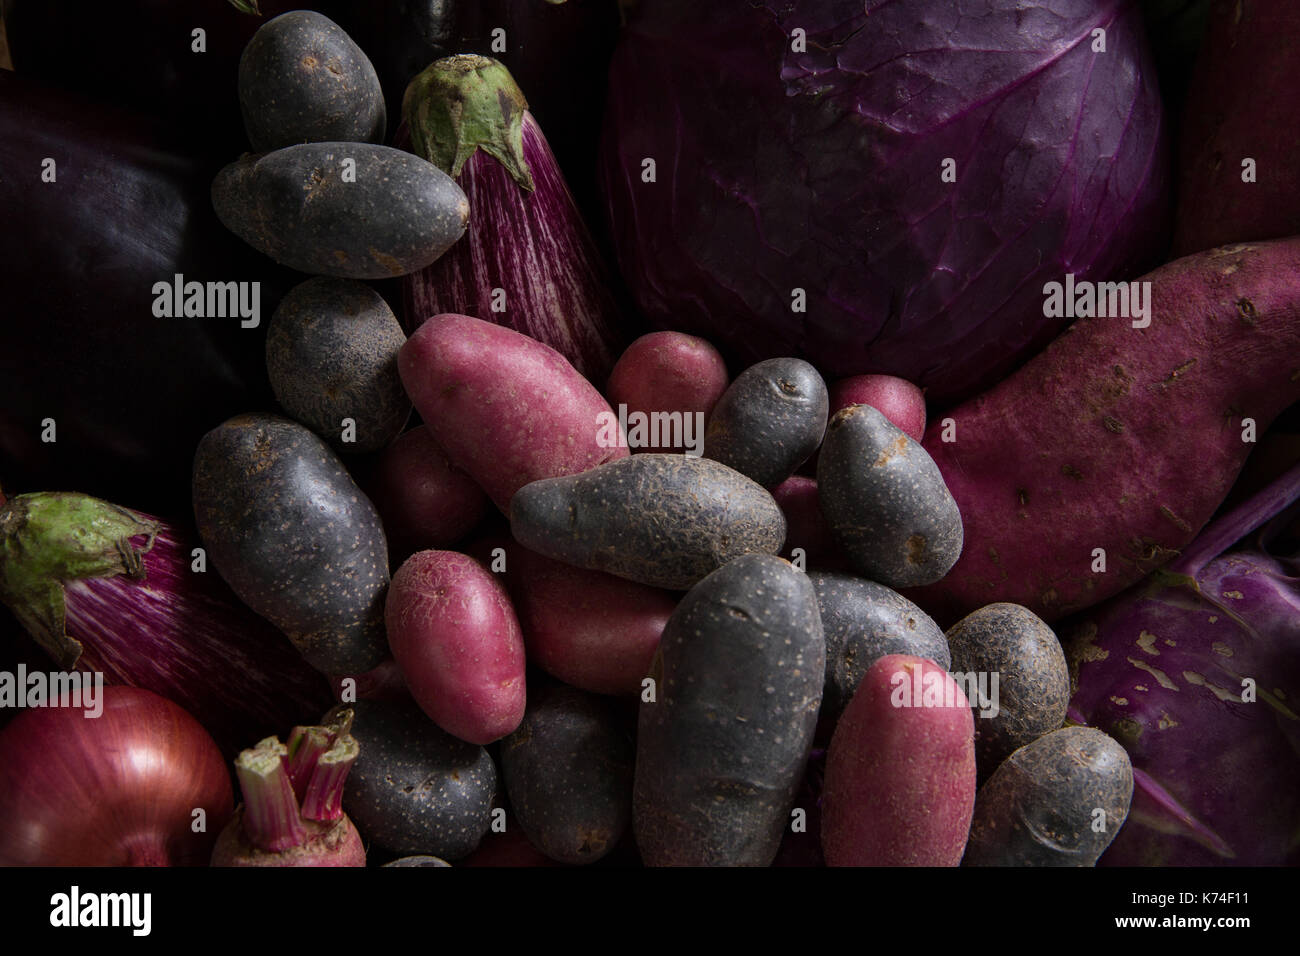 Close-up of various fresh vegetables Stock Photo